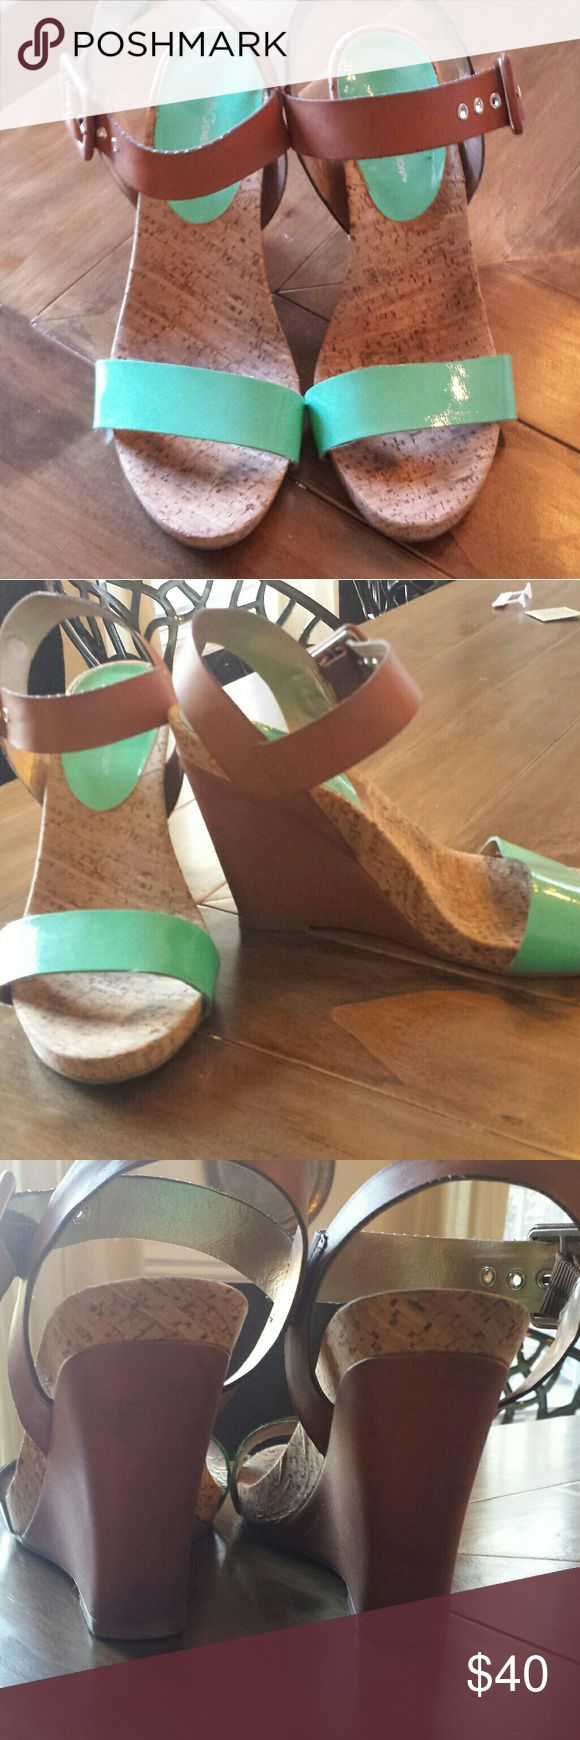 BCBG teal wedge sandals Super cute & comfy teal wedges. A few scuffs but only worn a few times! BCBGeneration Shoes Wedges